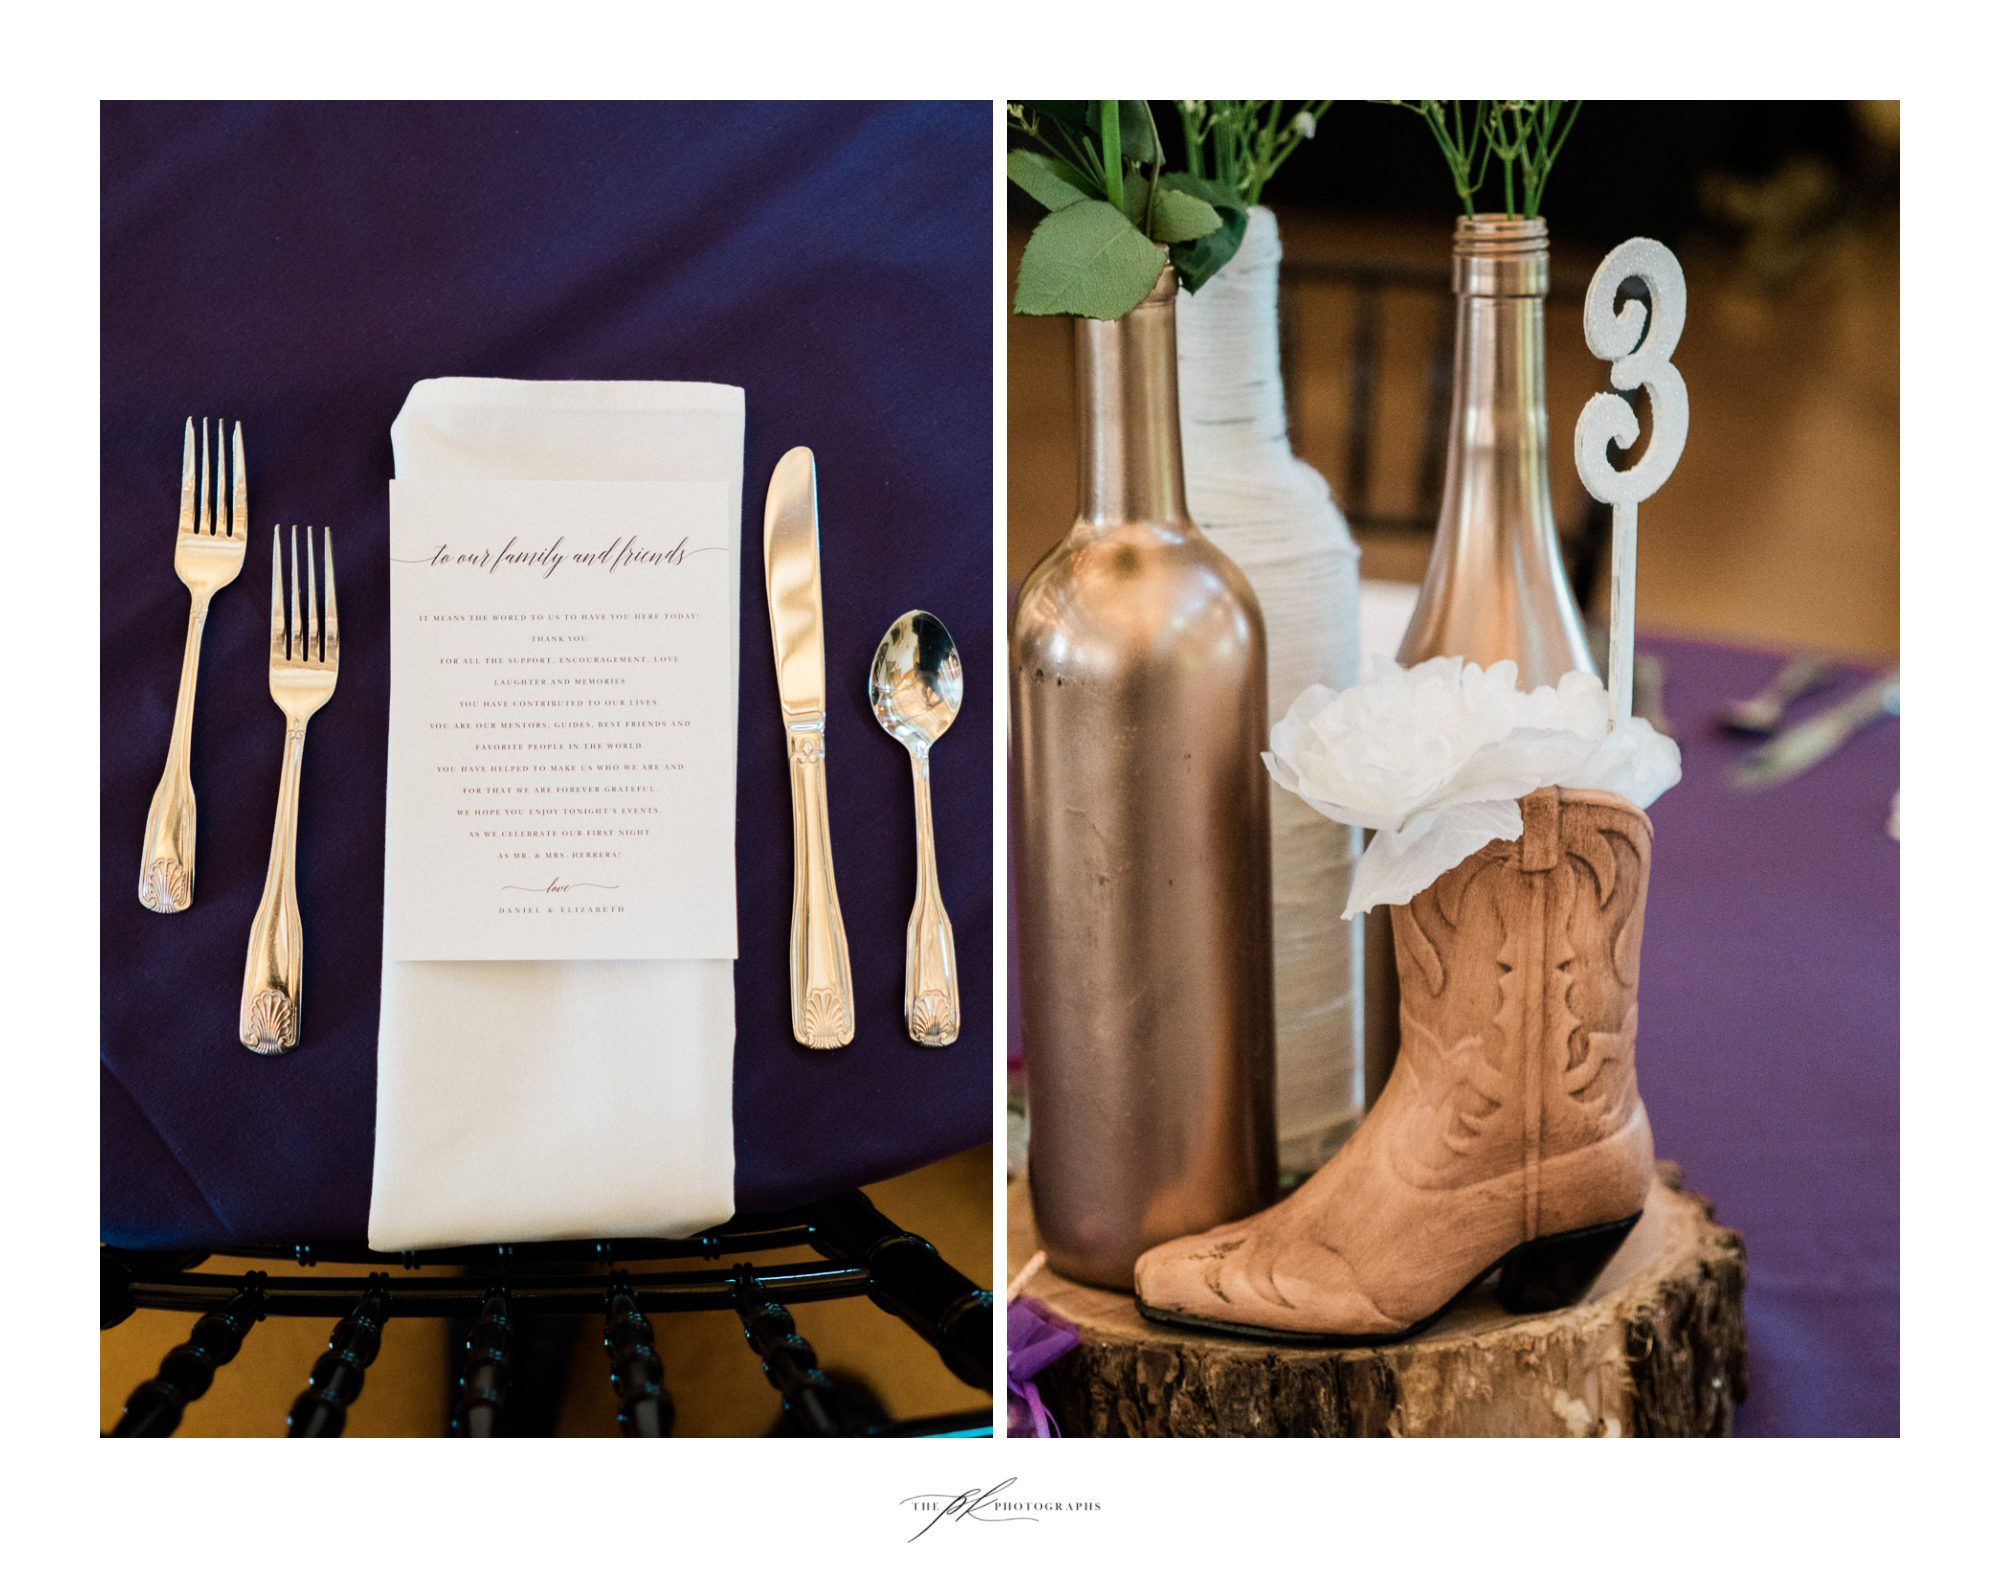 Wedding Reception Decor at Magnolia Halle in San Antonio, Texas - Photographed by The PK Photographs